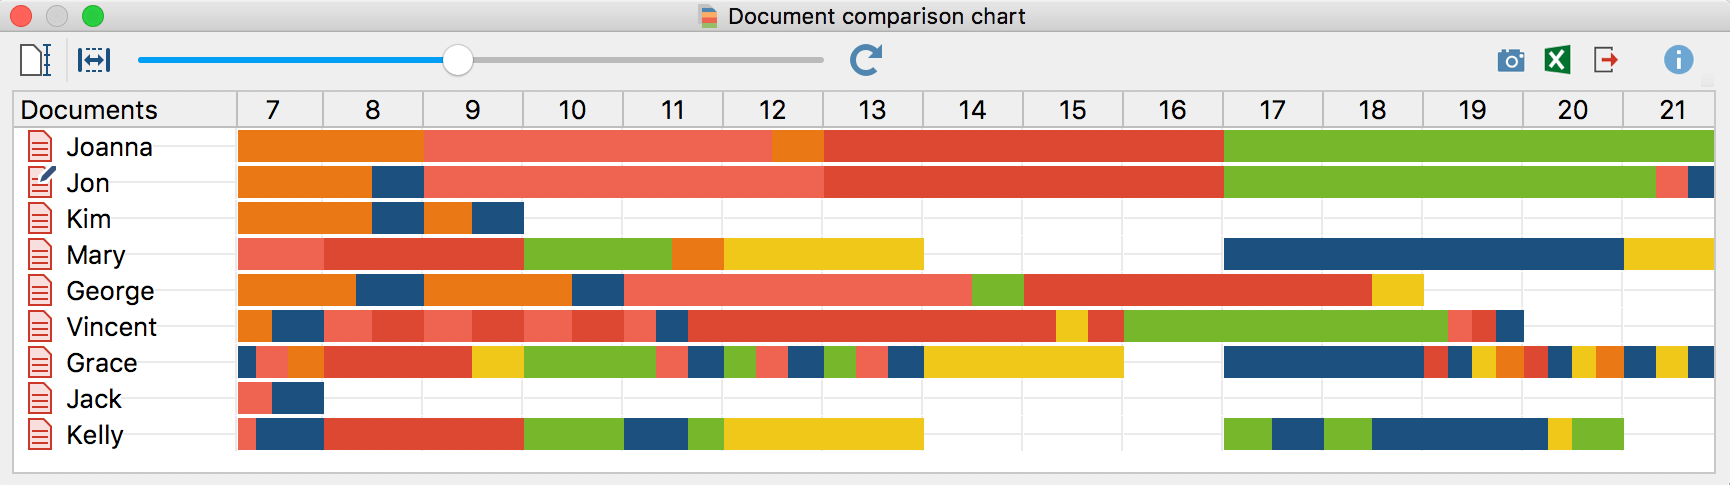 Example of a Document Comparison Chart